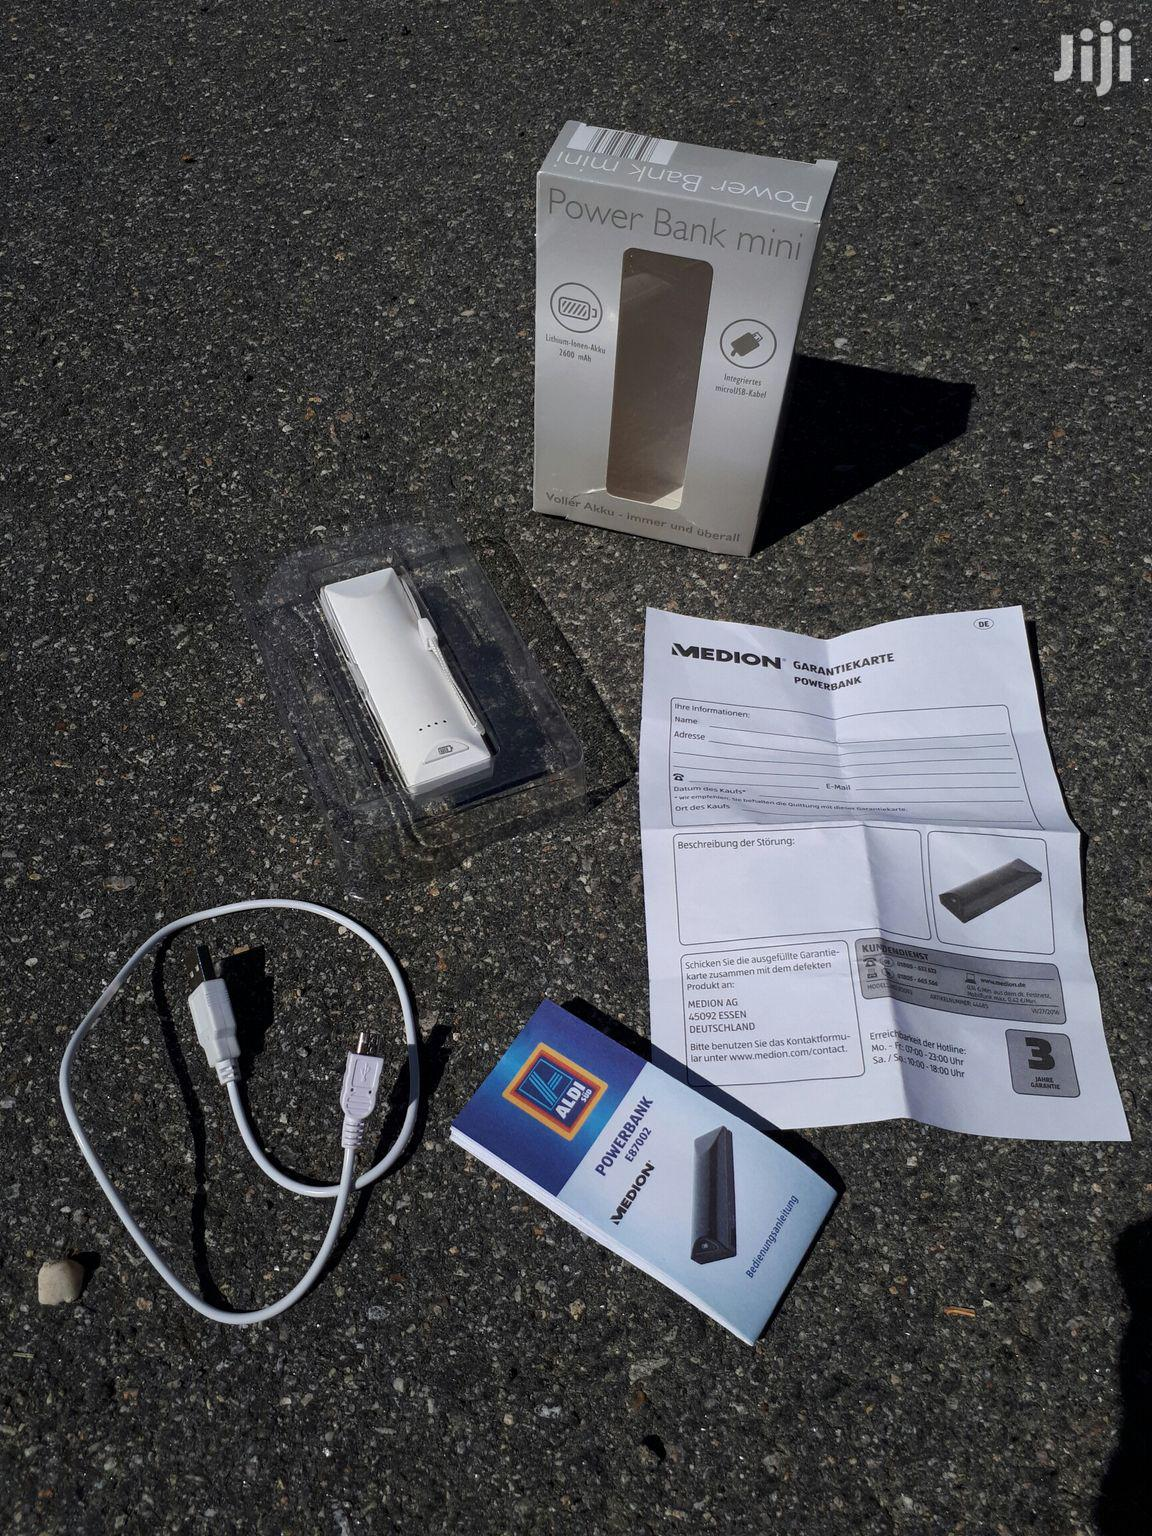 Medion Power Bank | Accessories for Mobile Phones & Tablets for sale in Kinondoni, Dar es Salaam, Tanzania